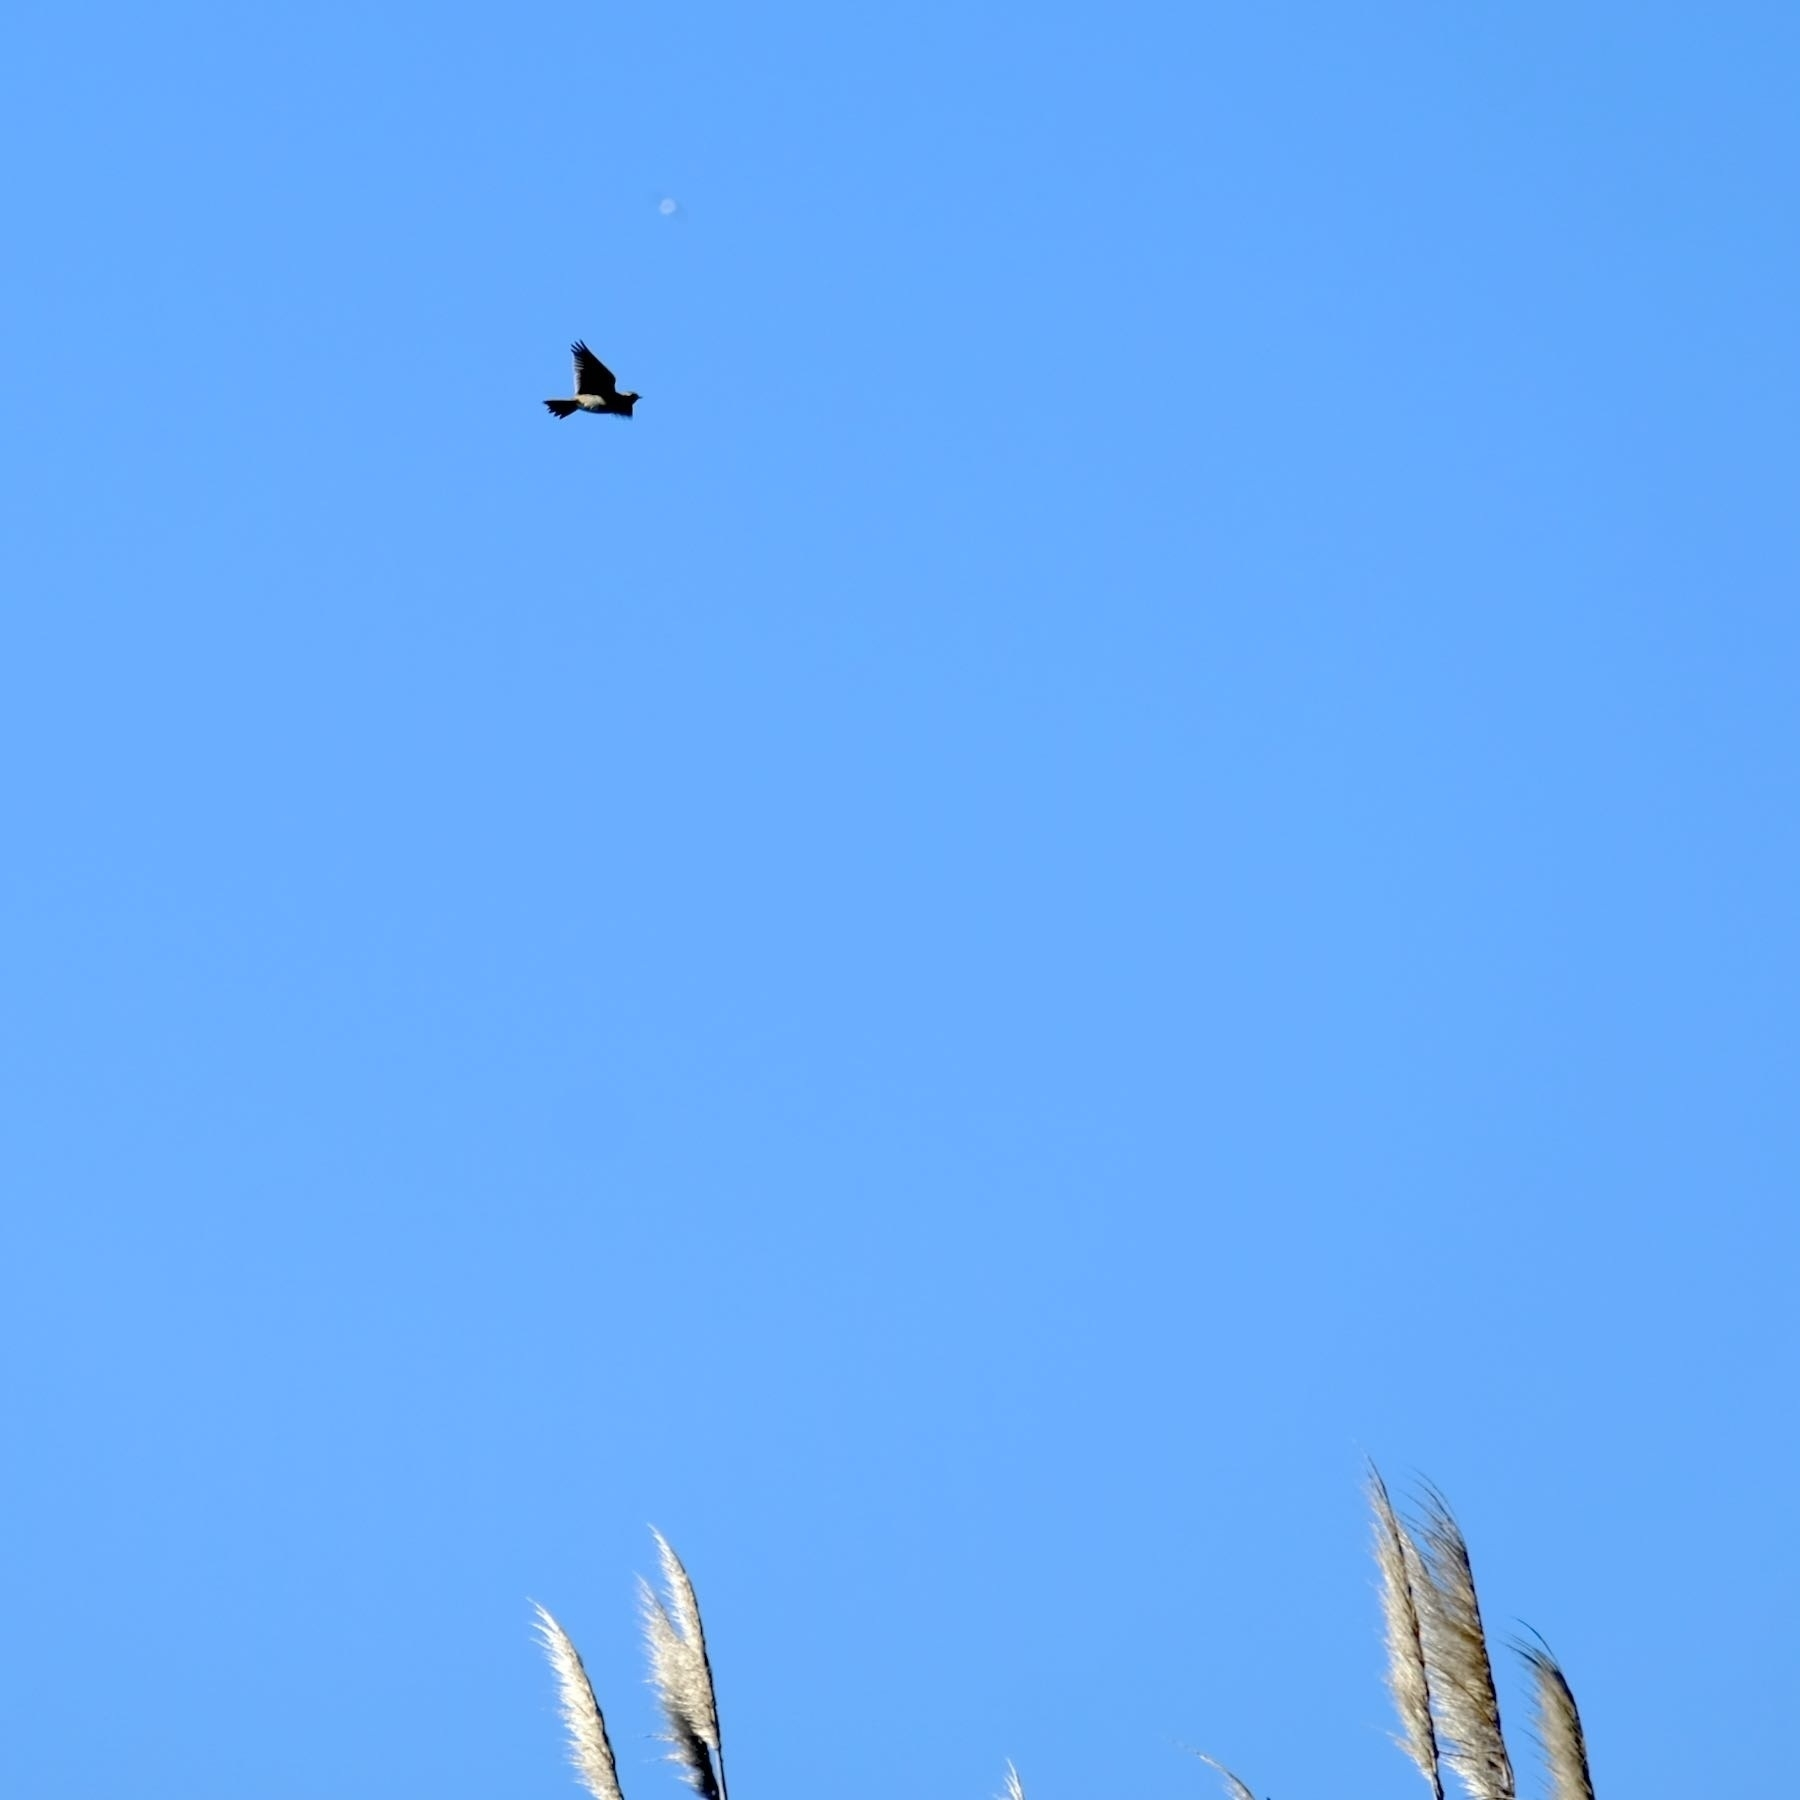 Small bird flying with outstretched wings.